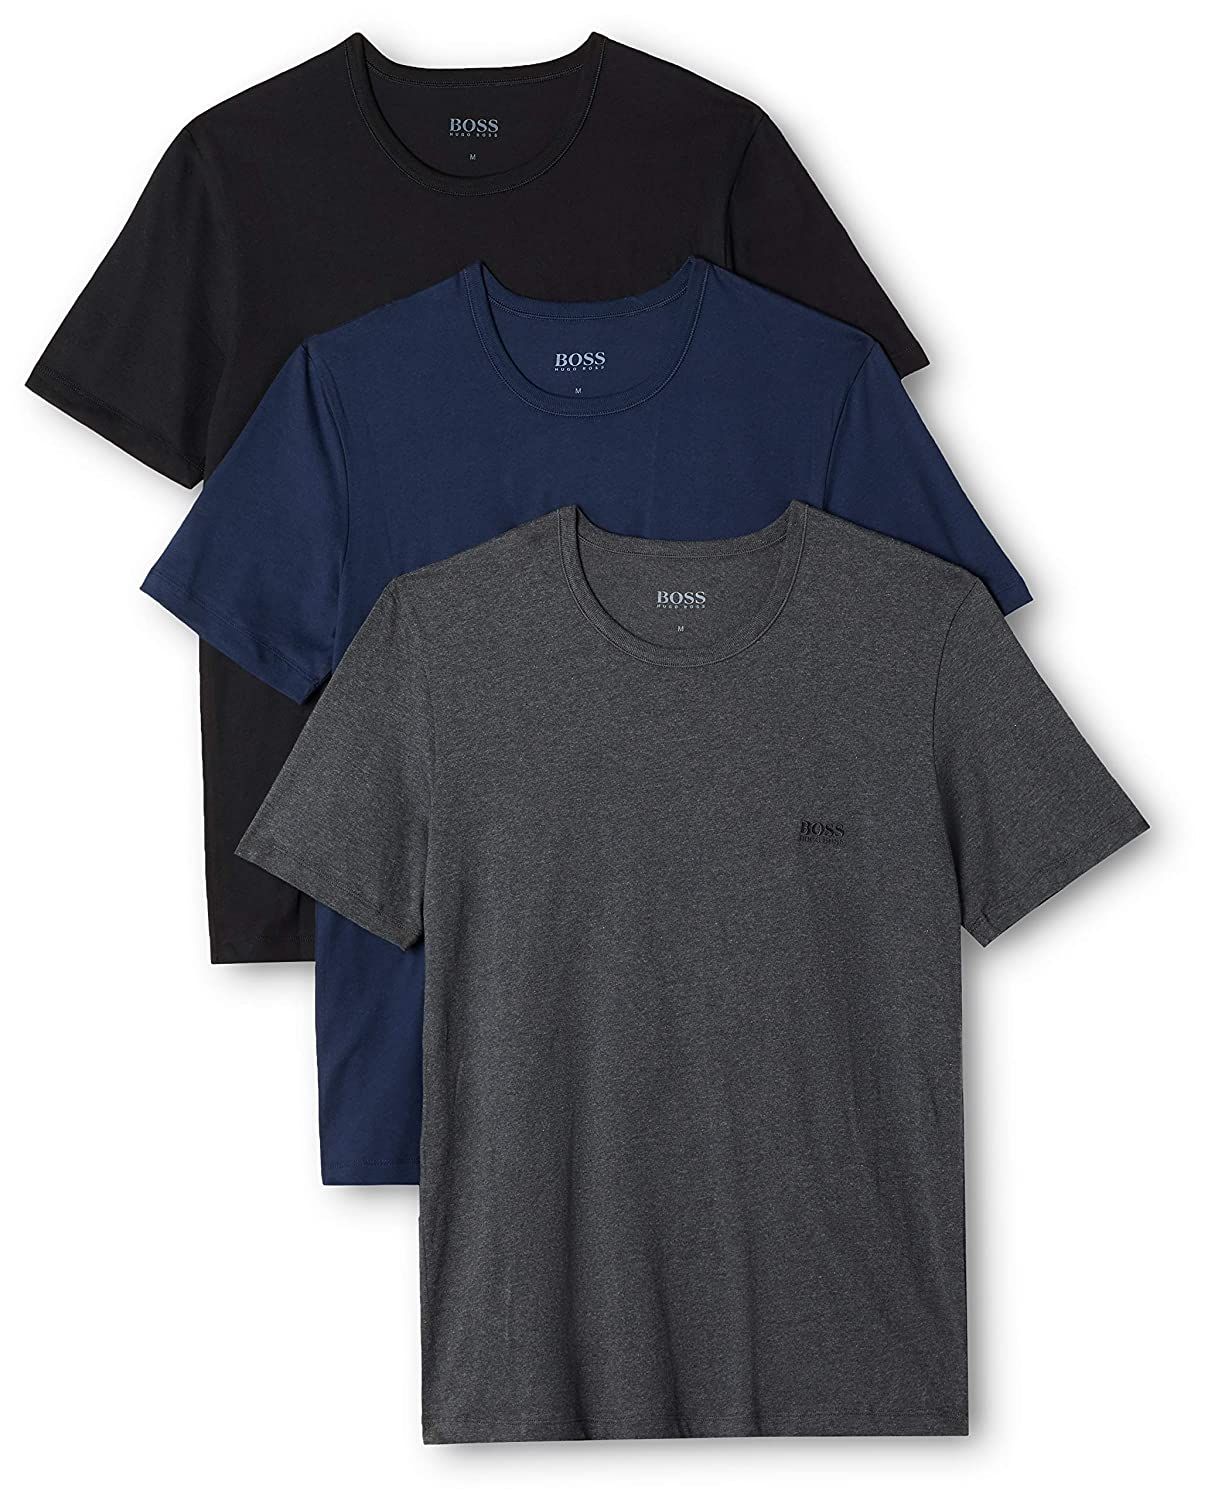 c480a407a Amazon.com: Hugo Boss Men's T-Shirt Rn 3p Co: Clothing